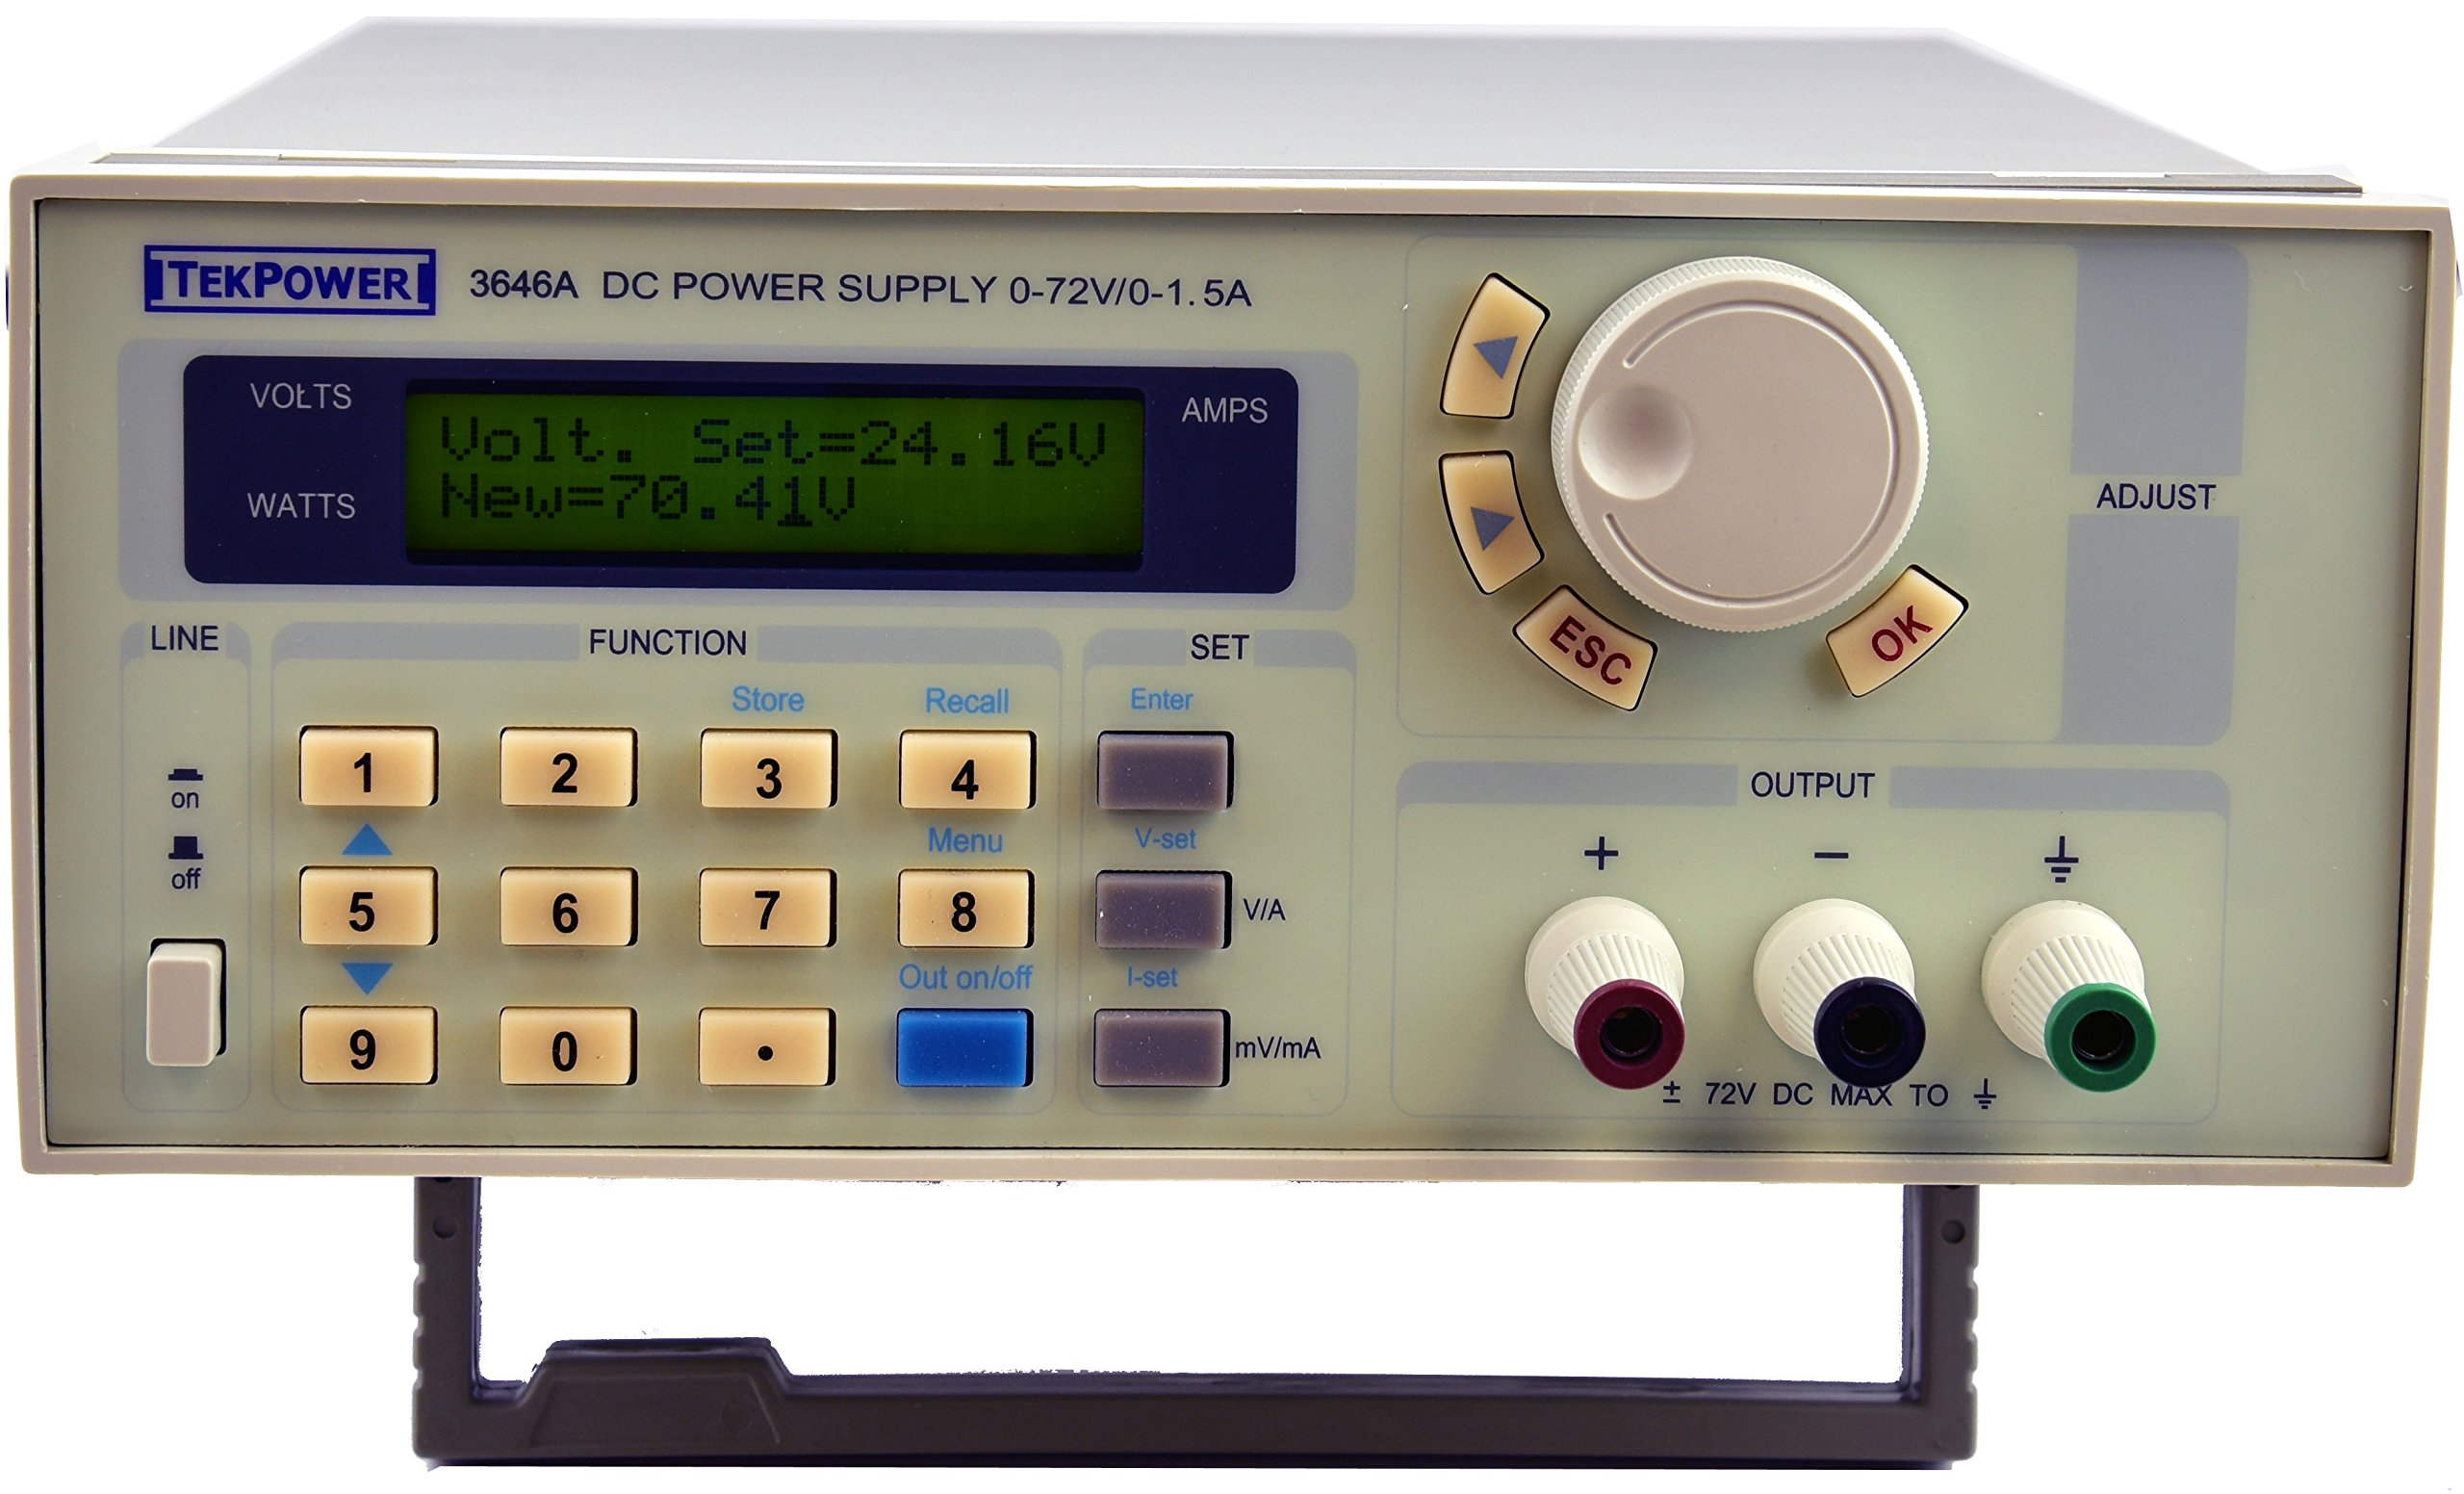 Tekpower TP3646A Programmable & Variable High-Precision DC Power Supply 0-72V @ 0-1.5A with USB Connection